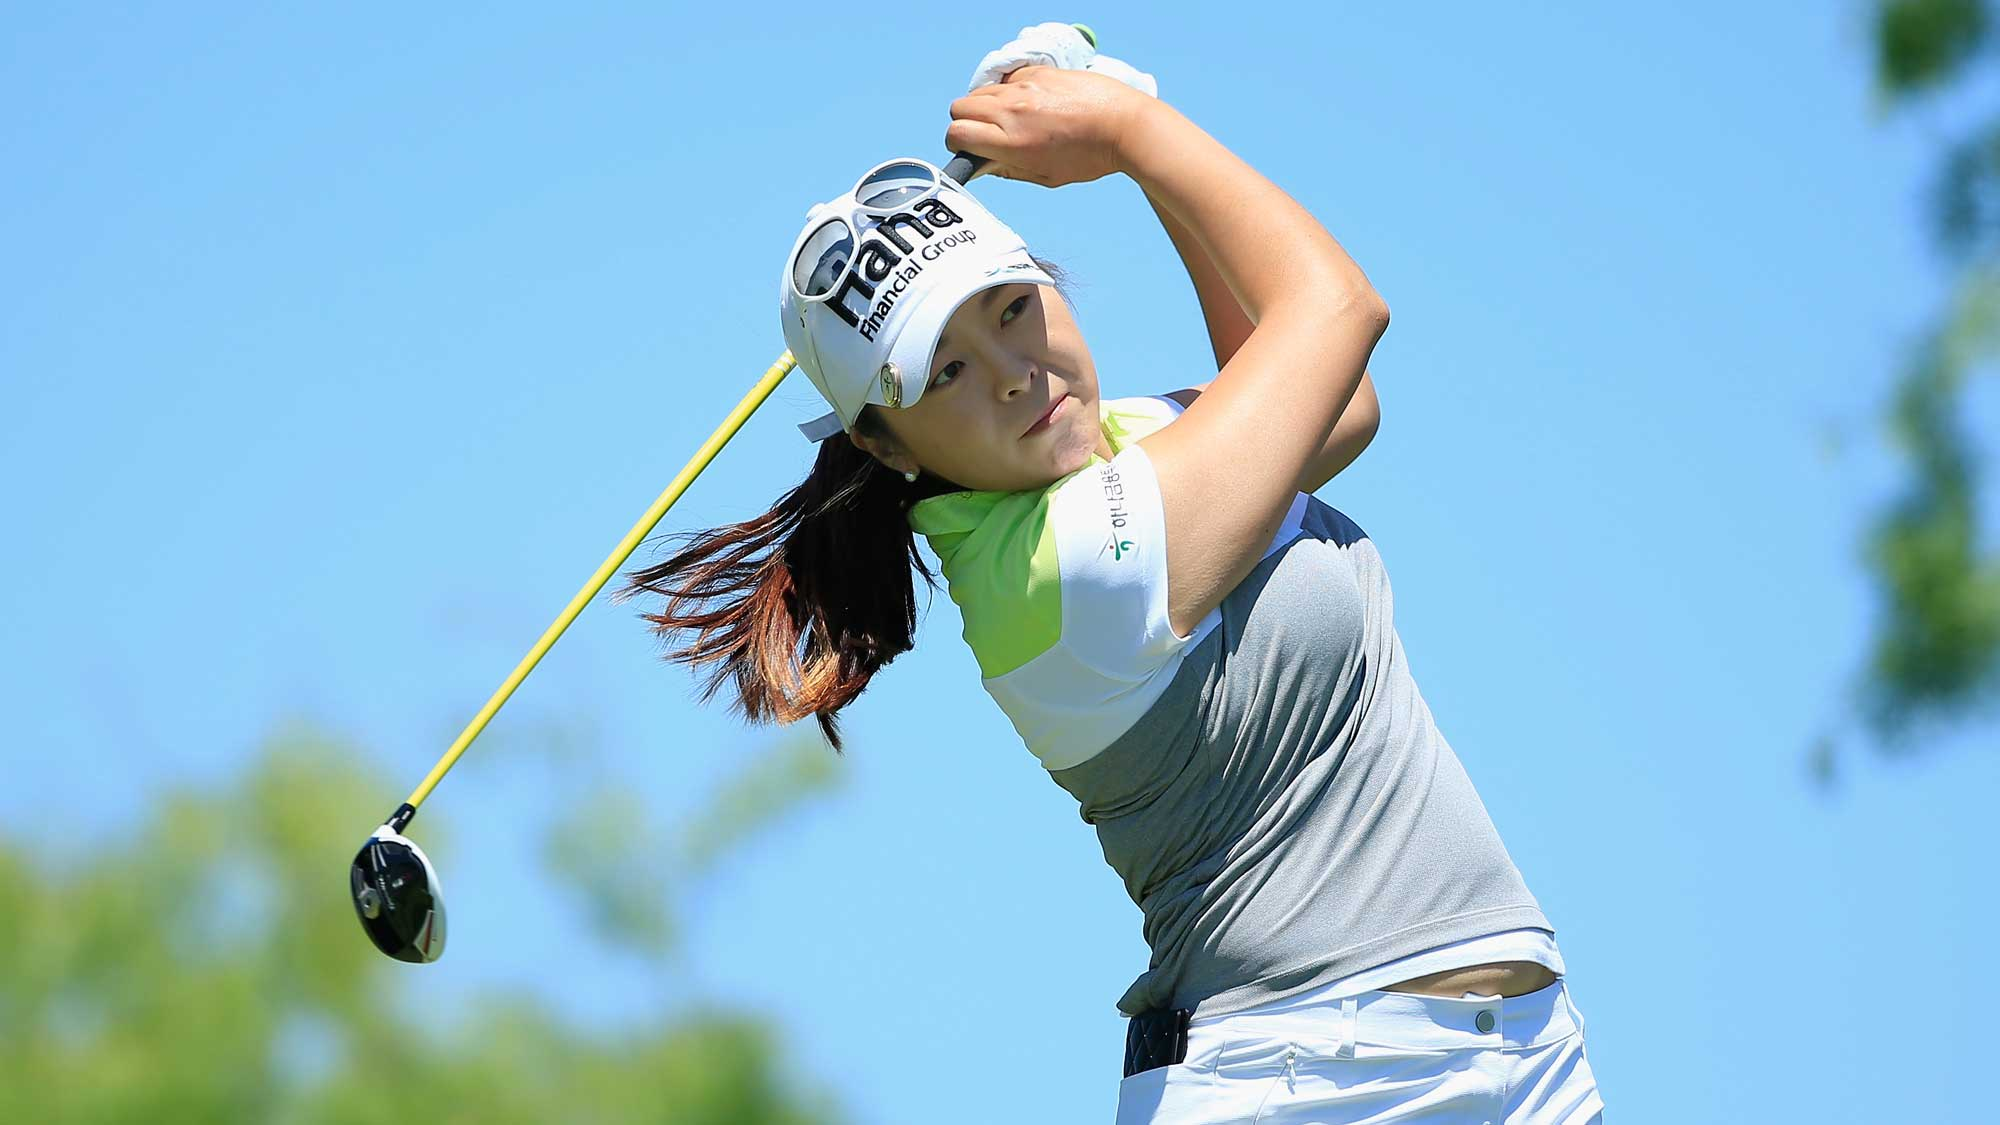 Mi Jung Hur of South Korea hits her tee shot on the third hole during the final round of the Volunteers of America Texas Shootout